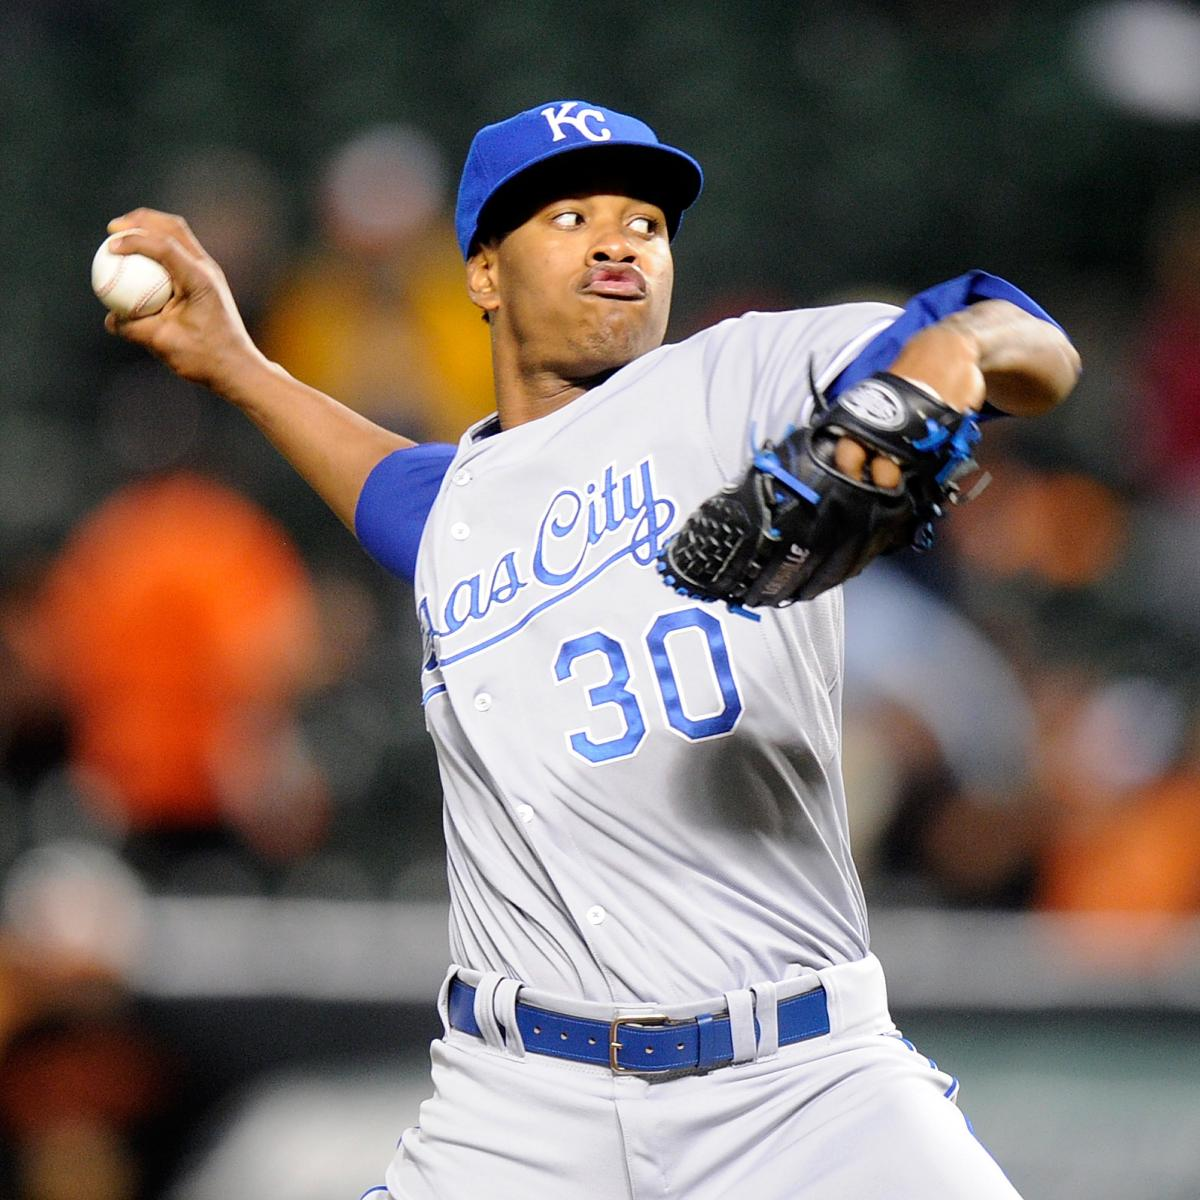 Yordano Ventura's Improved Curveball Could Be Next Step In